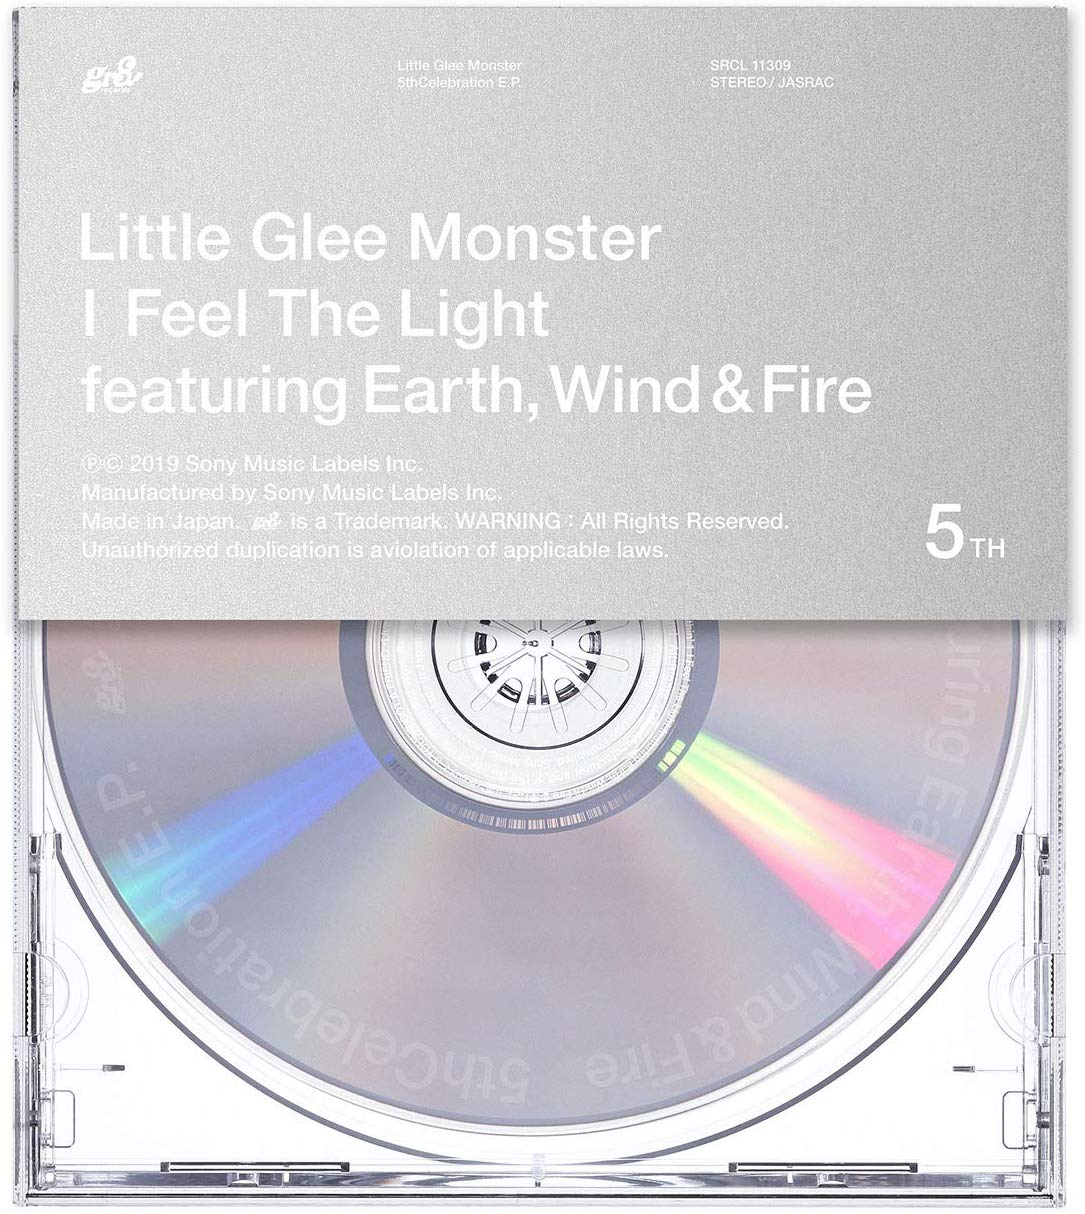 Little Glee Monster - I Feel The Light